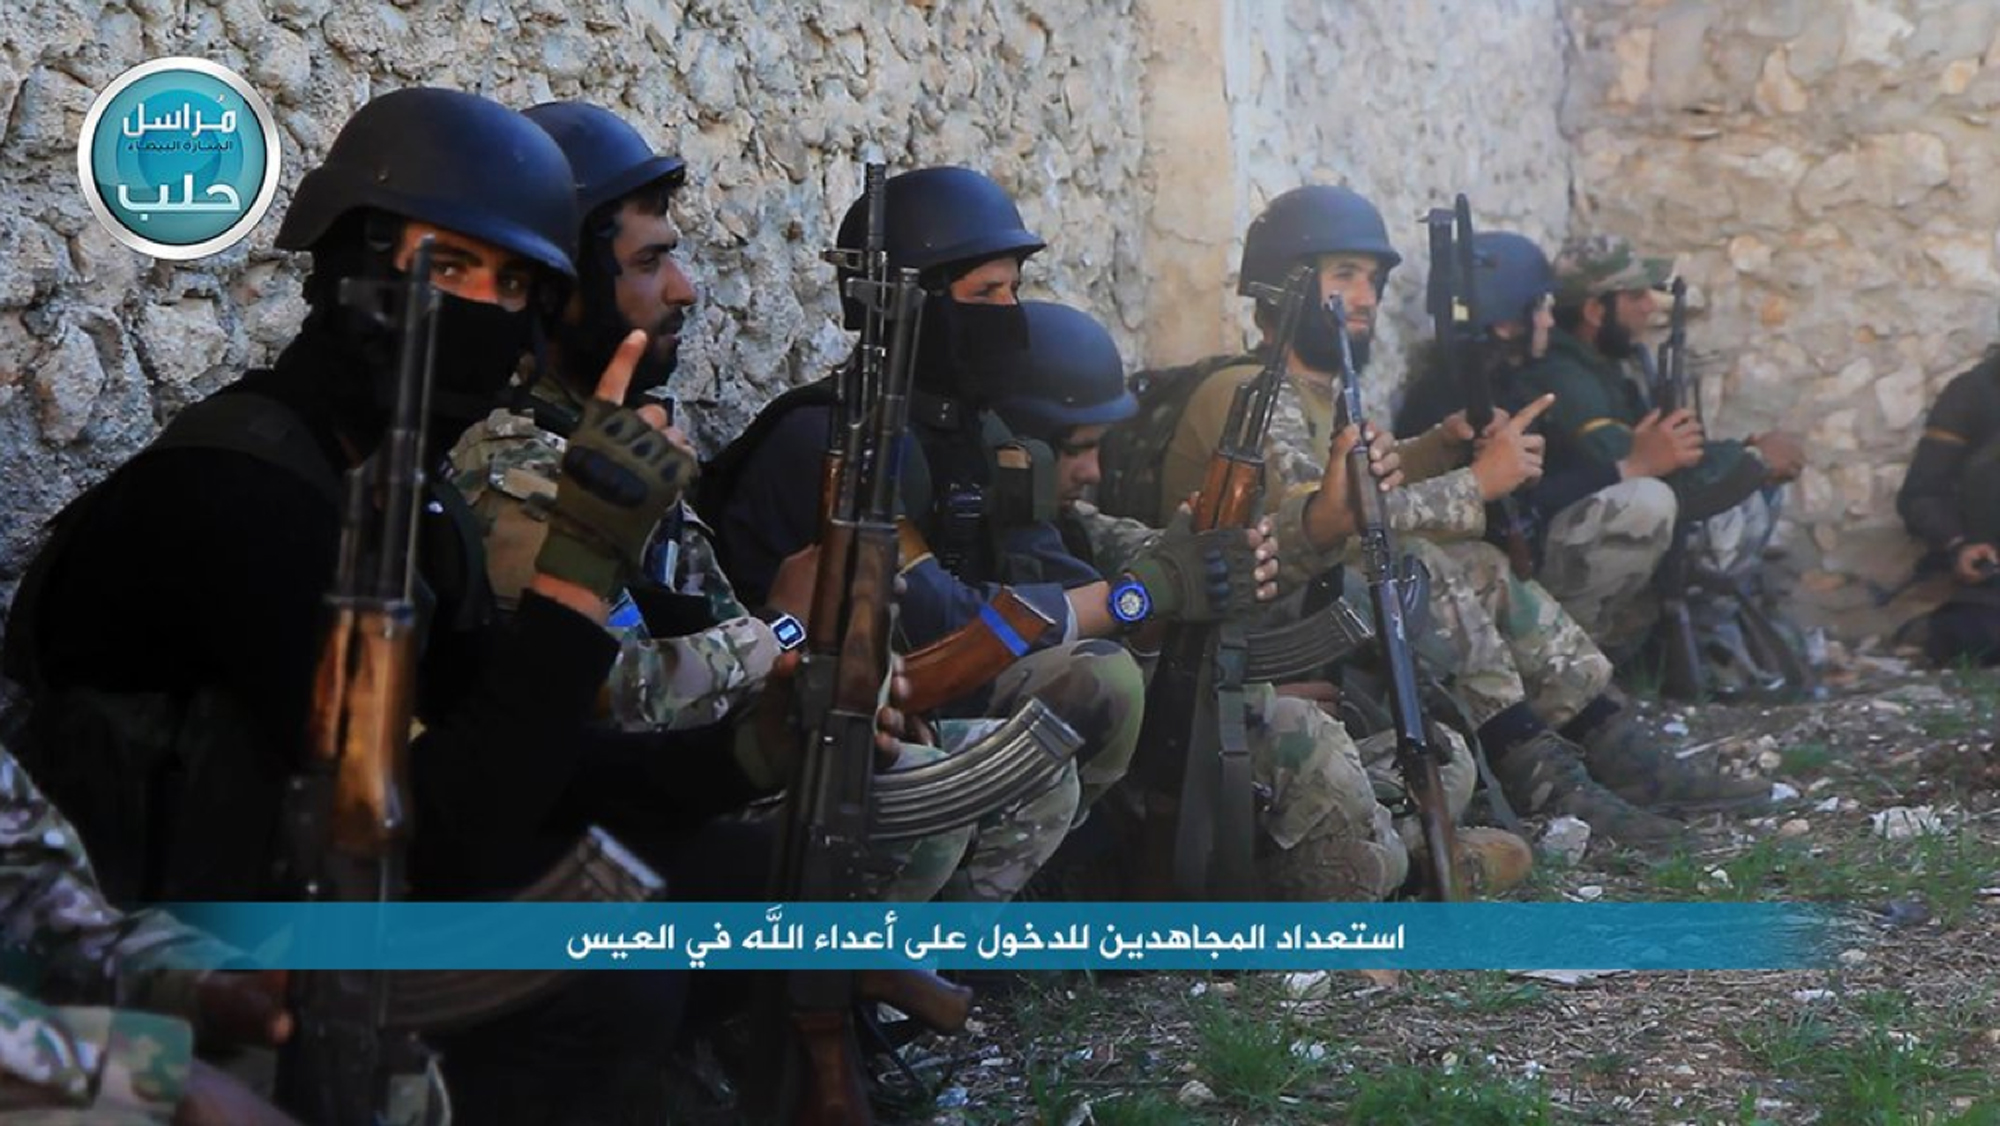 In this image posted on the Twitter page of Syria's al-Qaeda-linked Nusra Front on Friday, April 1, 2016, shows fighters from the Nusra Front.